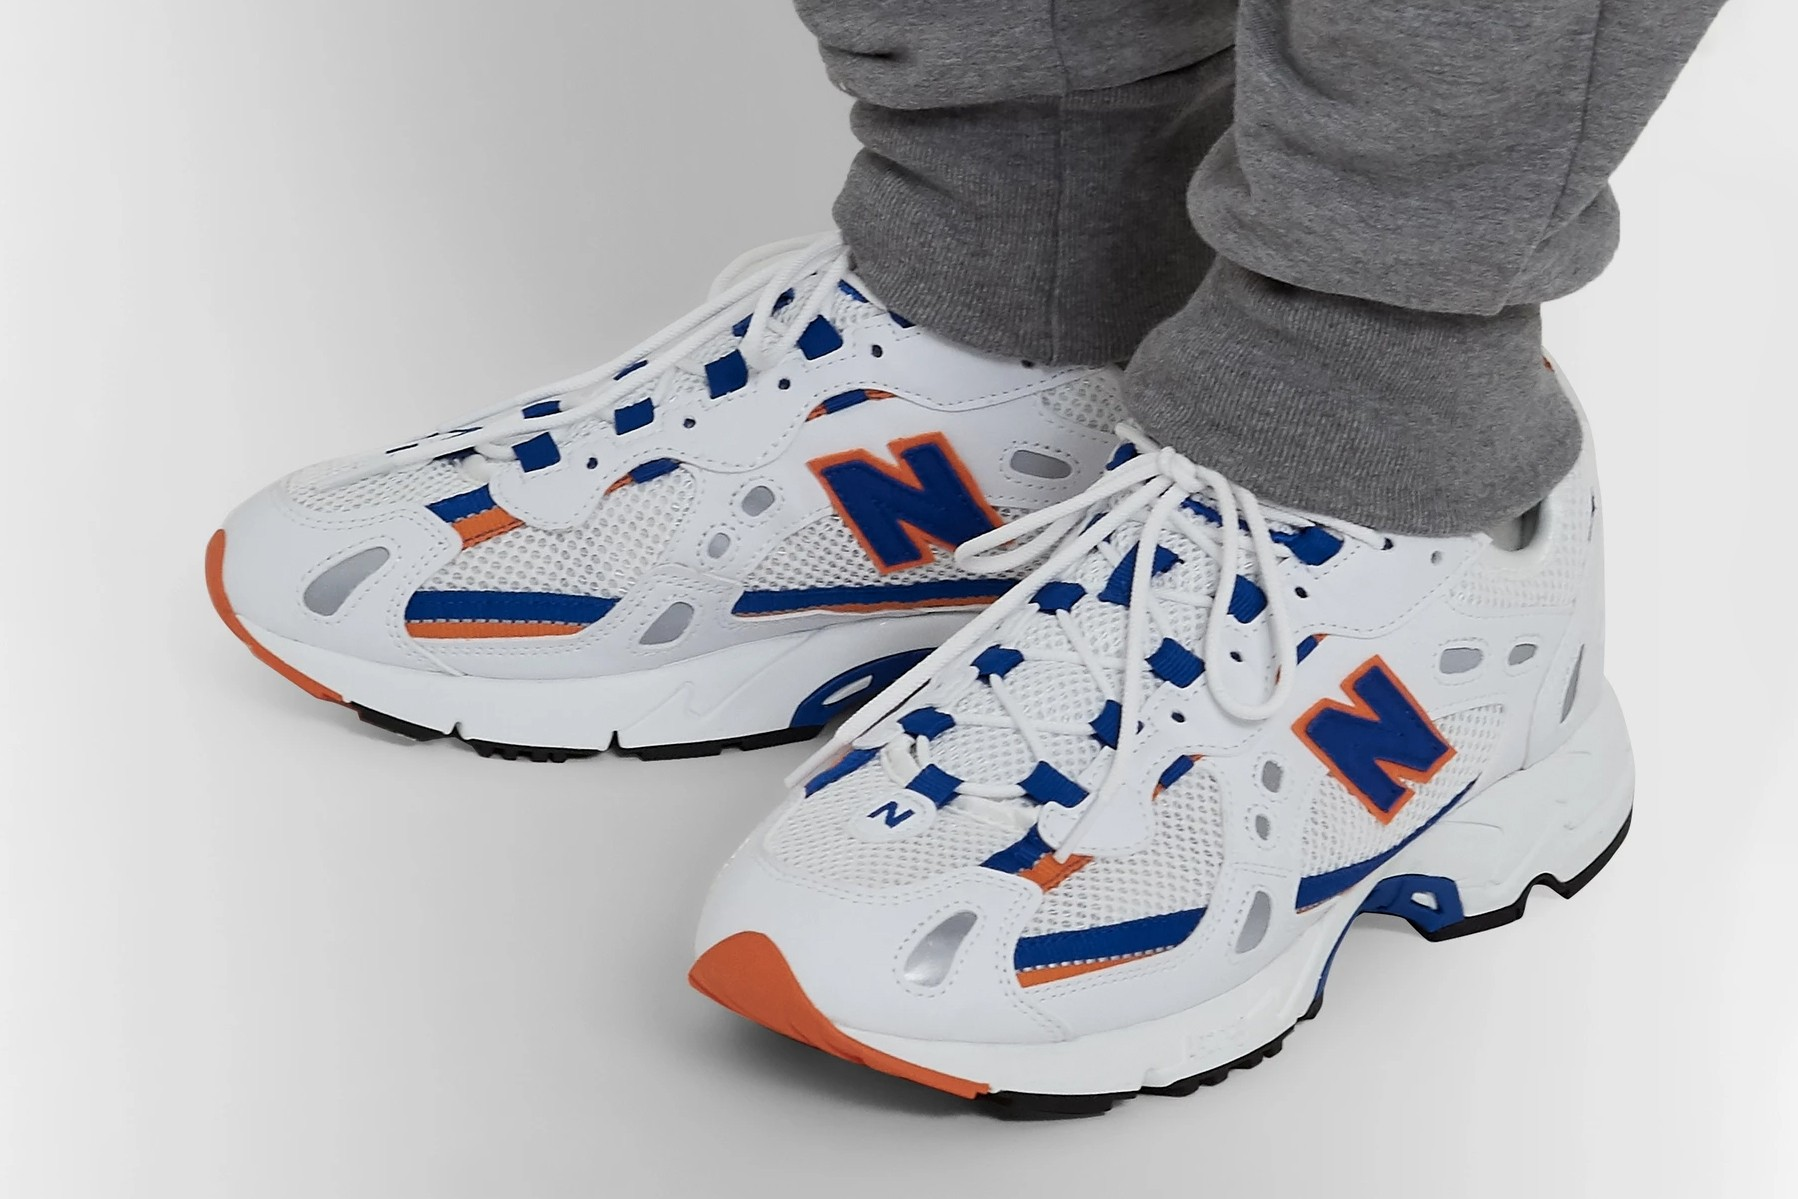 new balance red white and blue